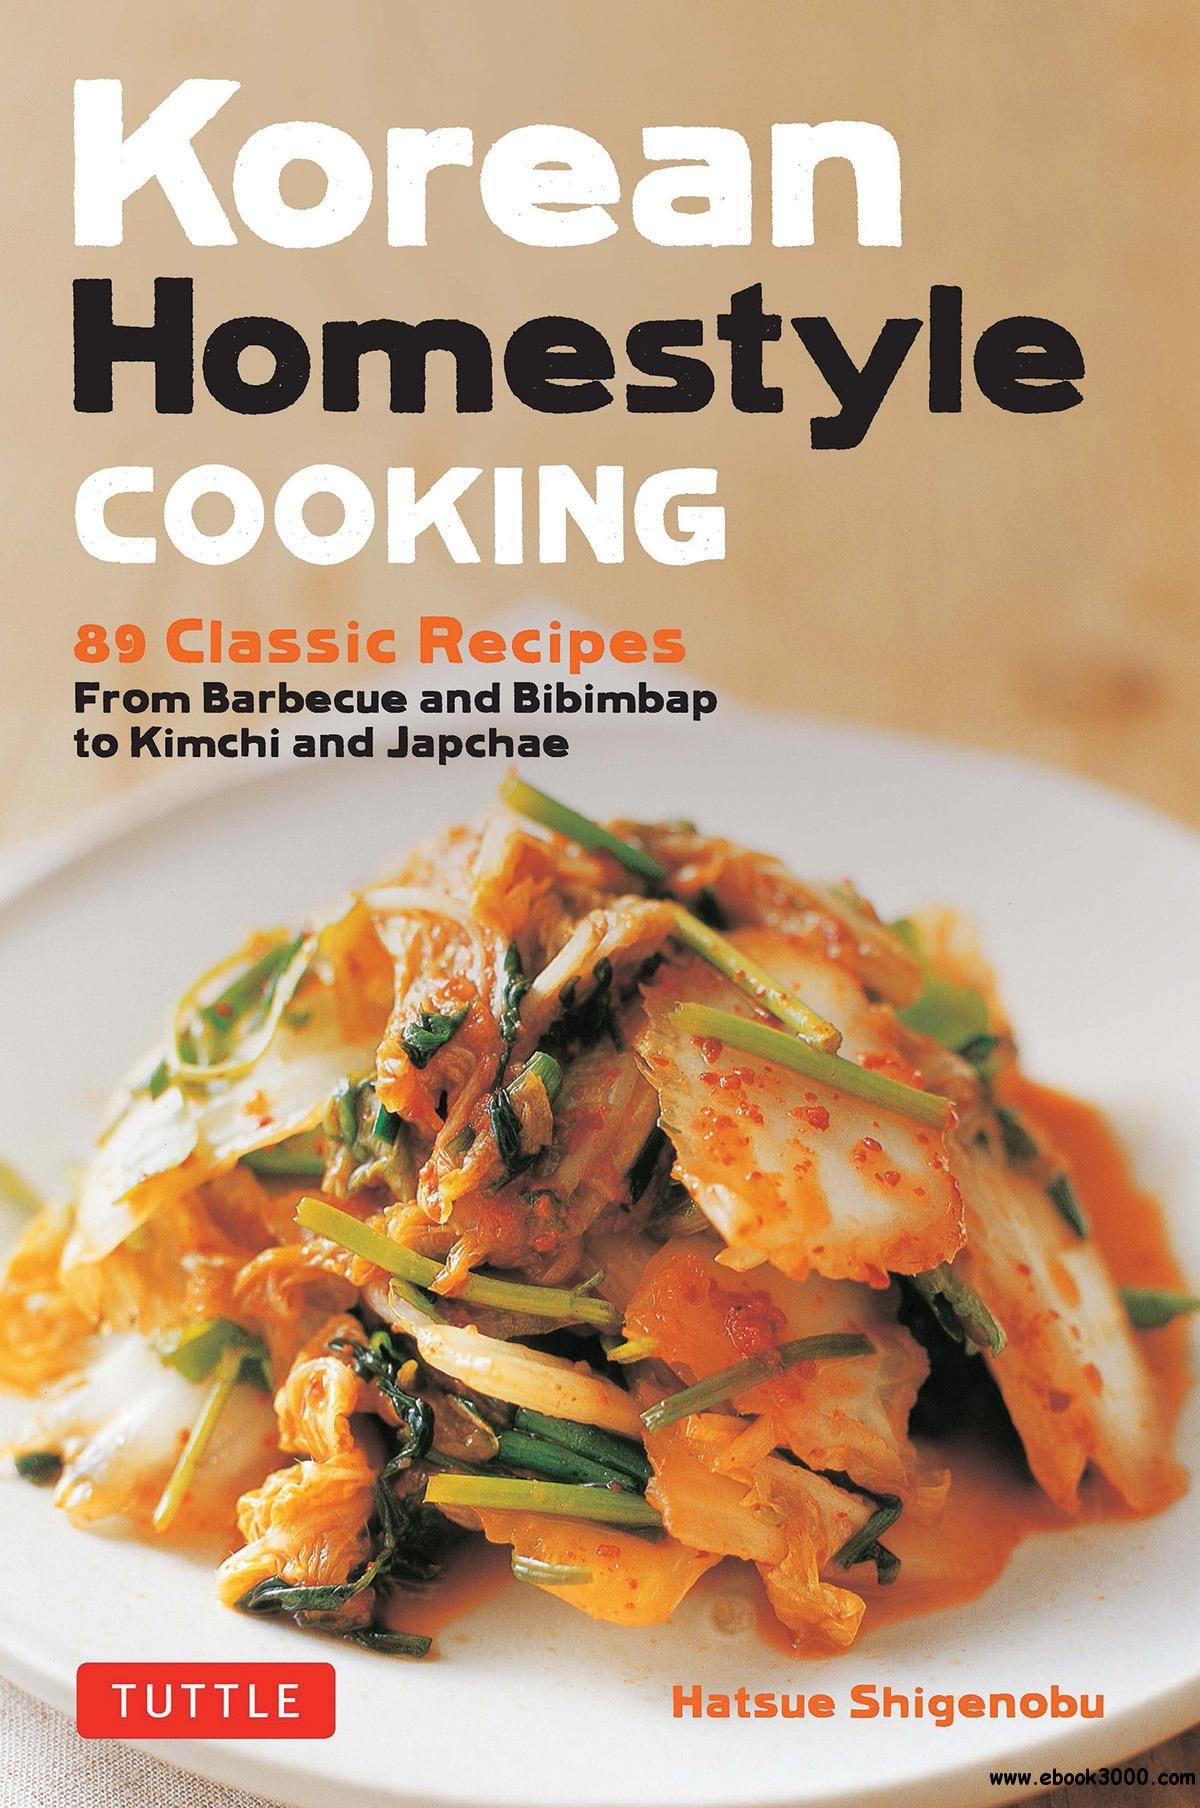 Korean Homestyle Cooking: 89 Classic Recipes: From Barbecue and Bibimbap to Kimchi and Japchae